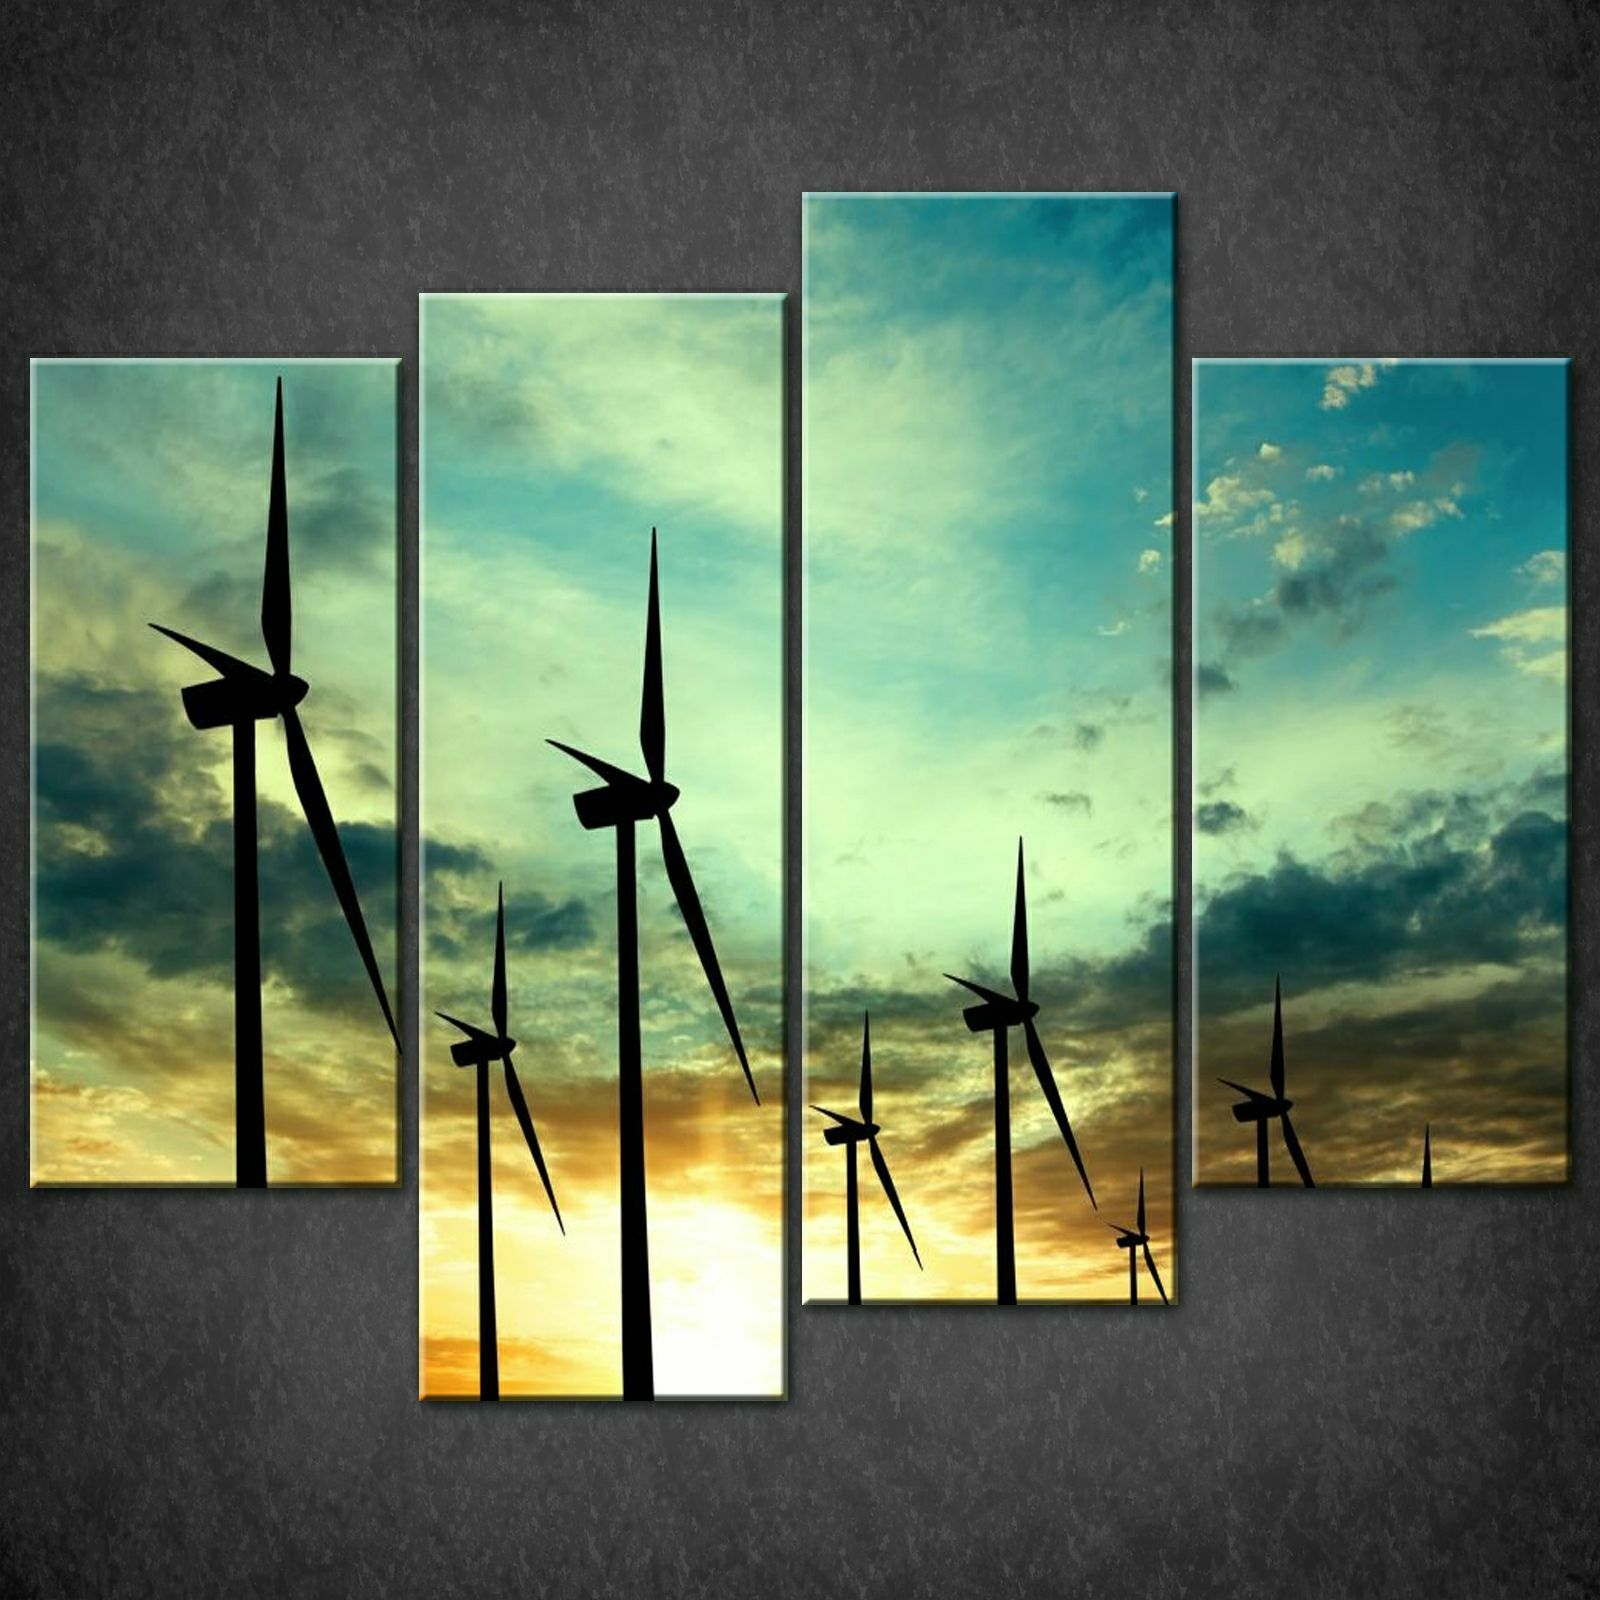 WIND TURBINES LANDSCAPE CANVAS PRINT PICTURE WALL ART FREE FAST FAST FAST DELIVERY 78d7a6